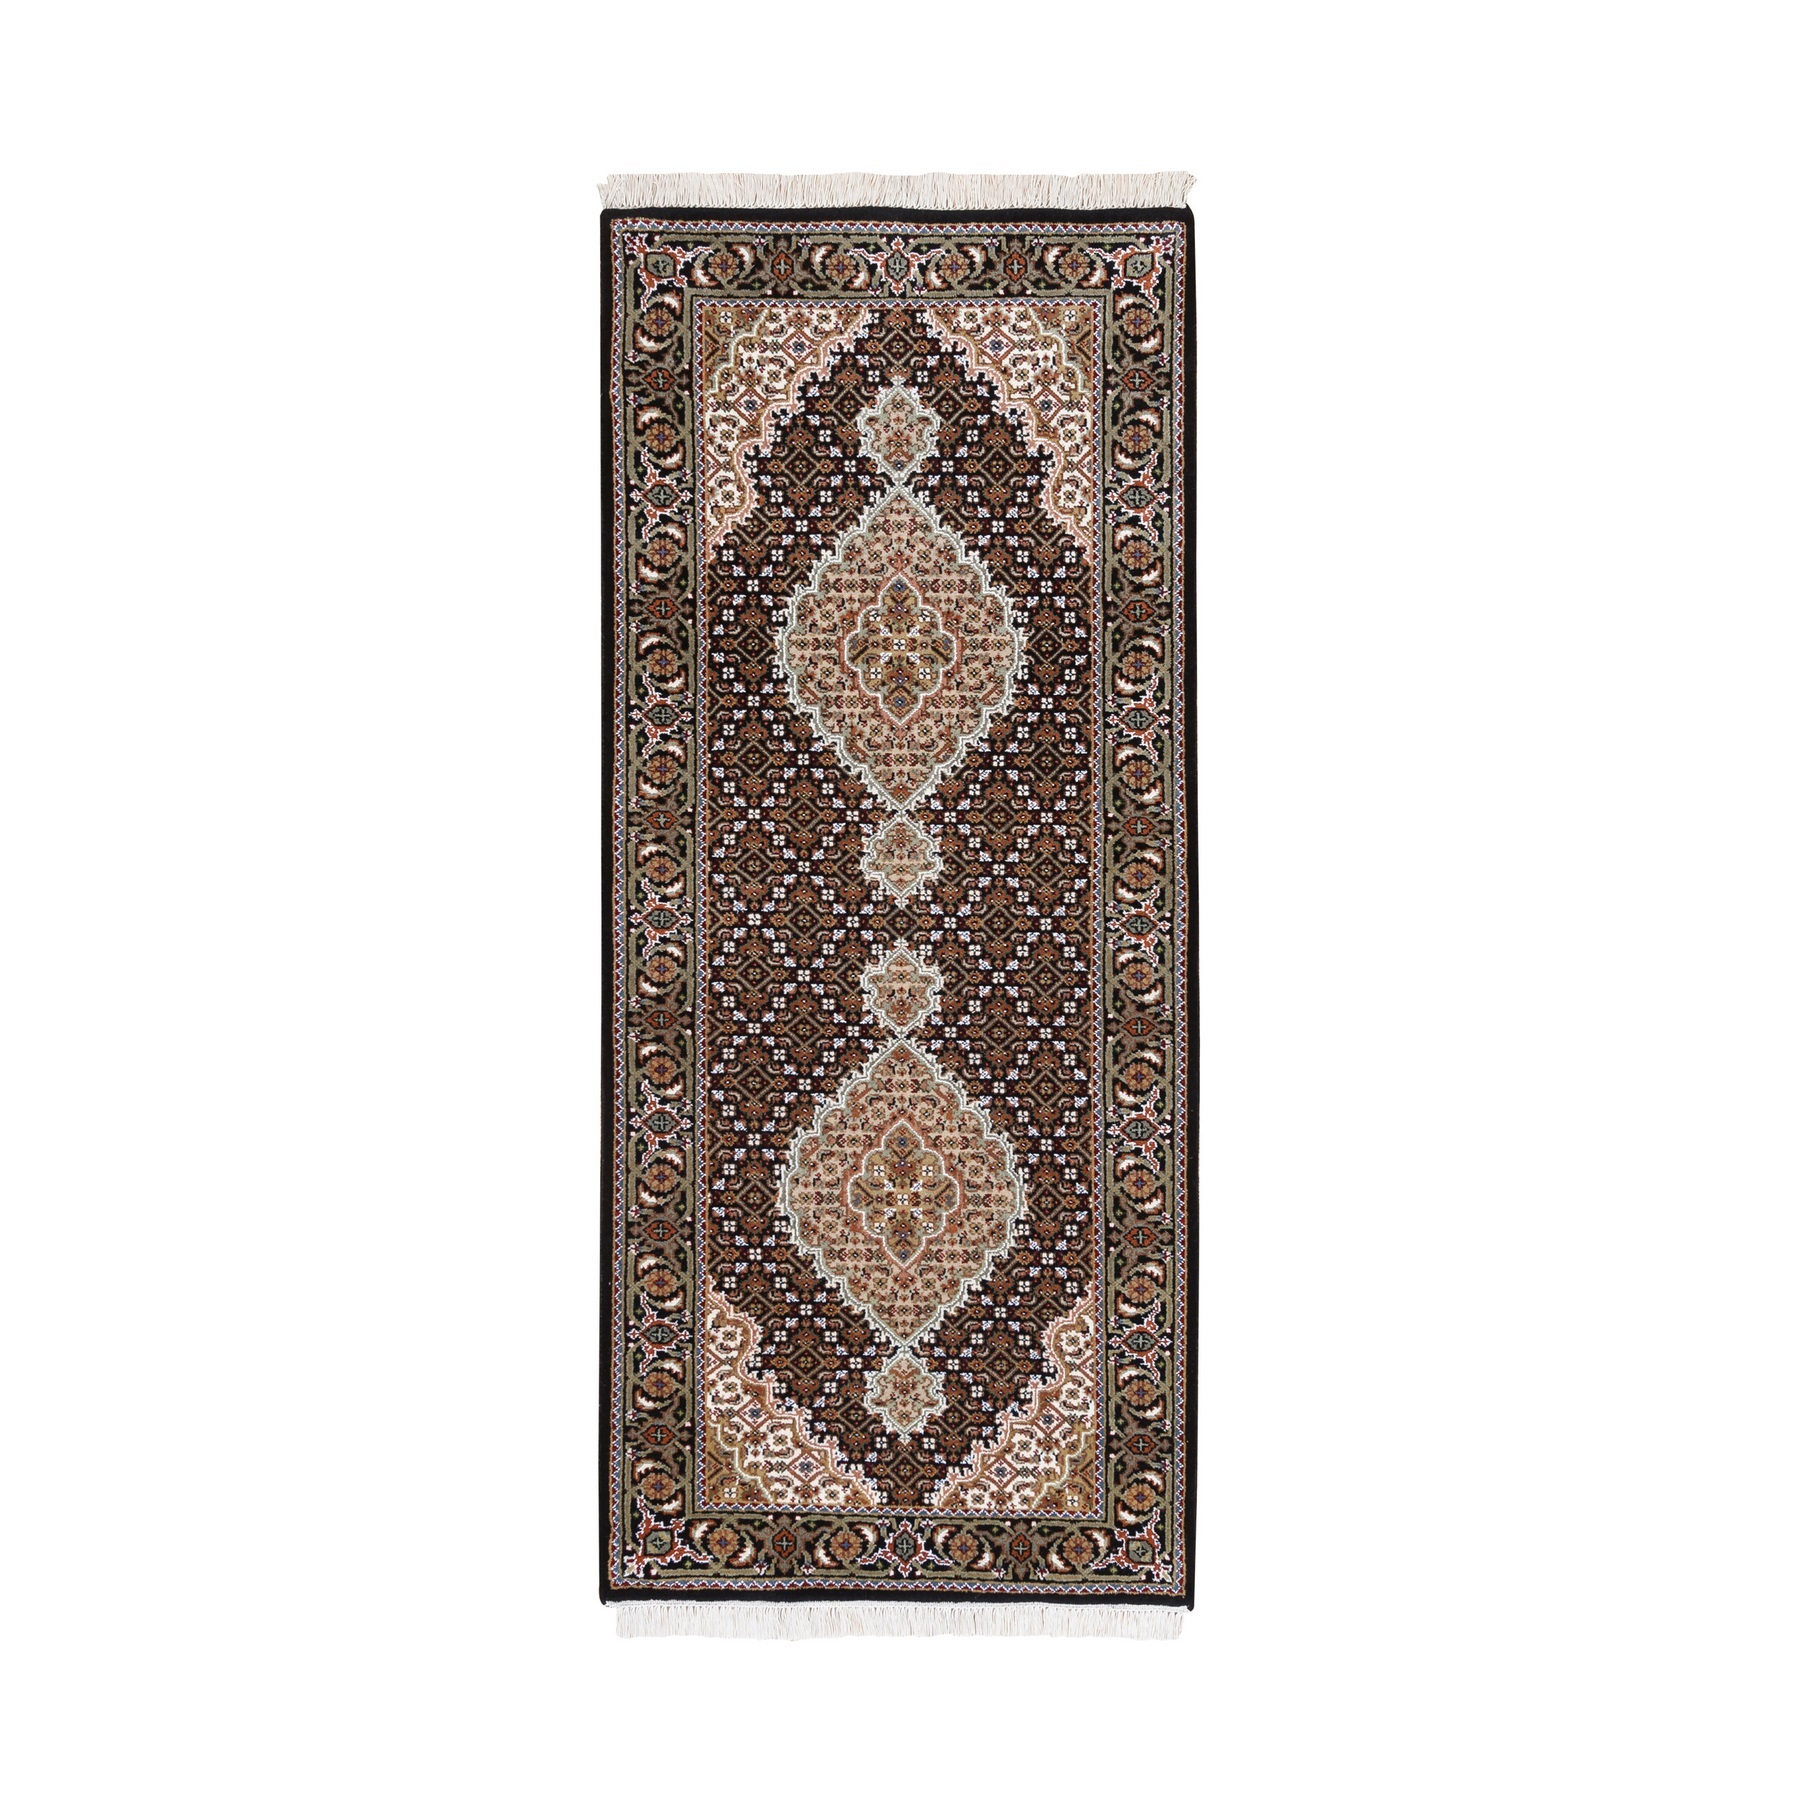 "2'8""x6'7"" Tabriz Mahi Fish Medallion Design Wool And Silk Hand Woven Black Oriental Runner Rug"